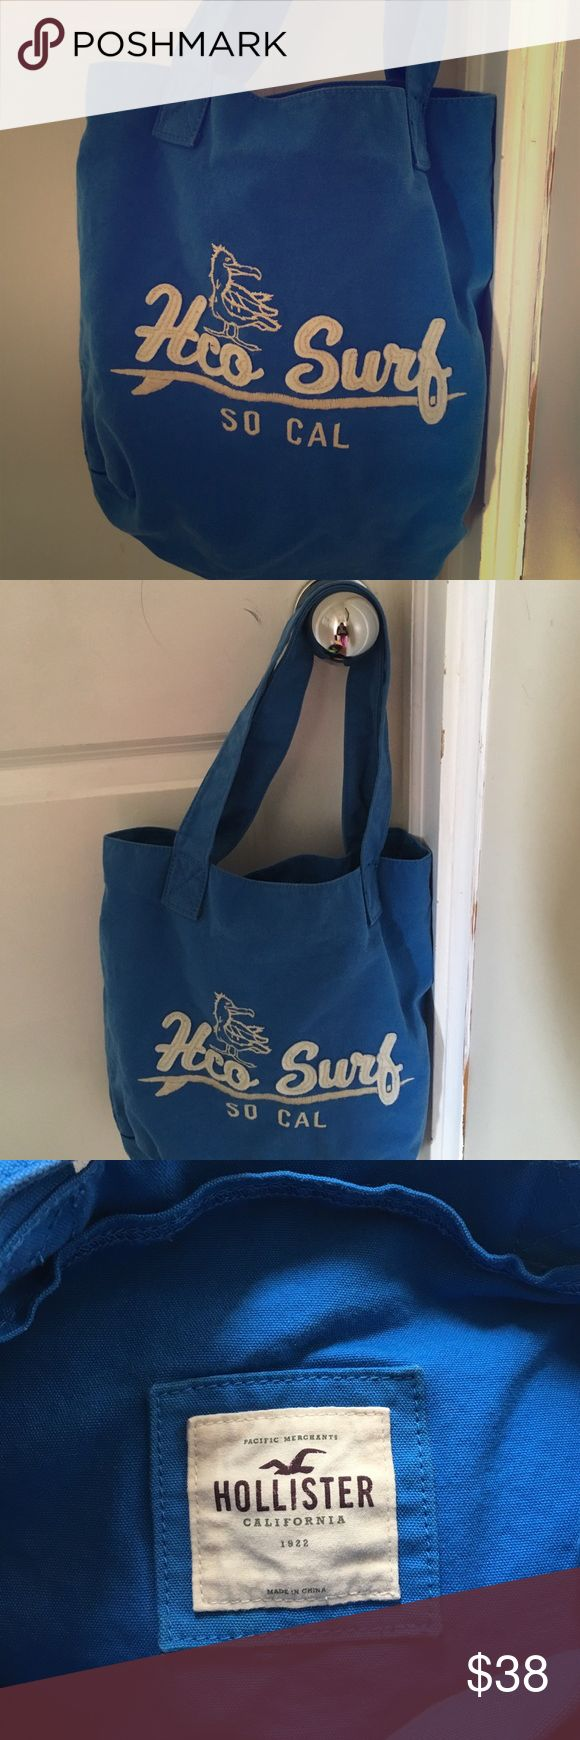 Hollister Tote Bag Super cute Hollister tote! Can be used as a book bag for school or just a bag you can throw some stuff in and be out the door! Small to medium sized. Hollister Bags Totes